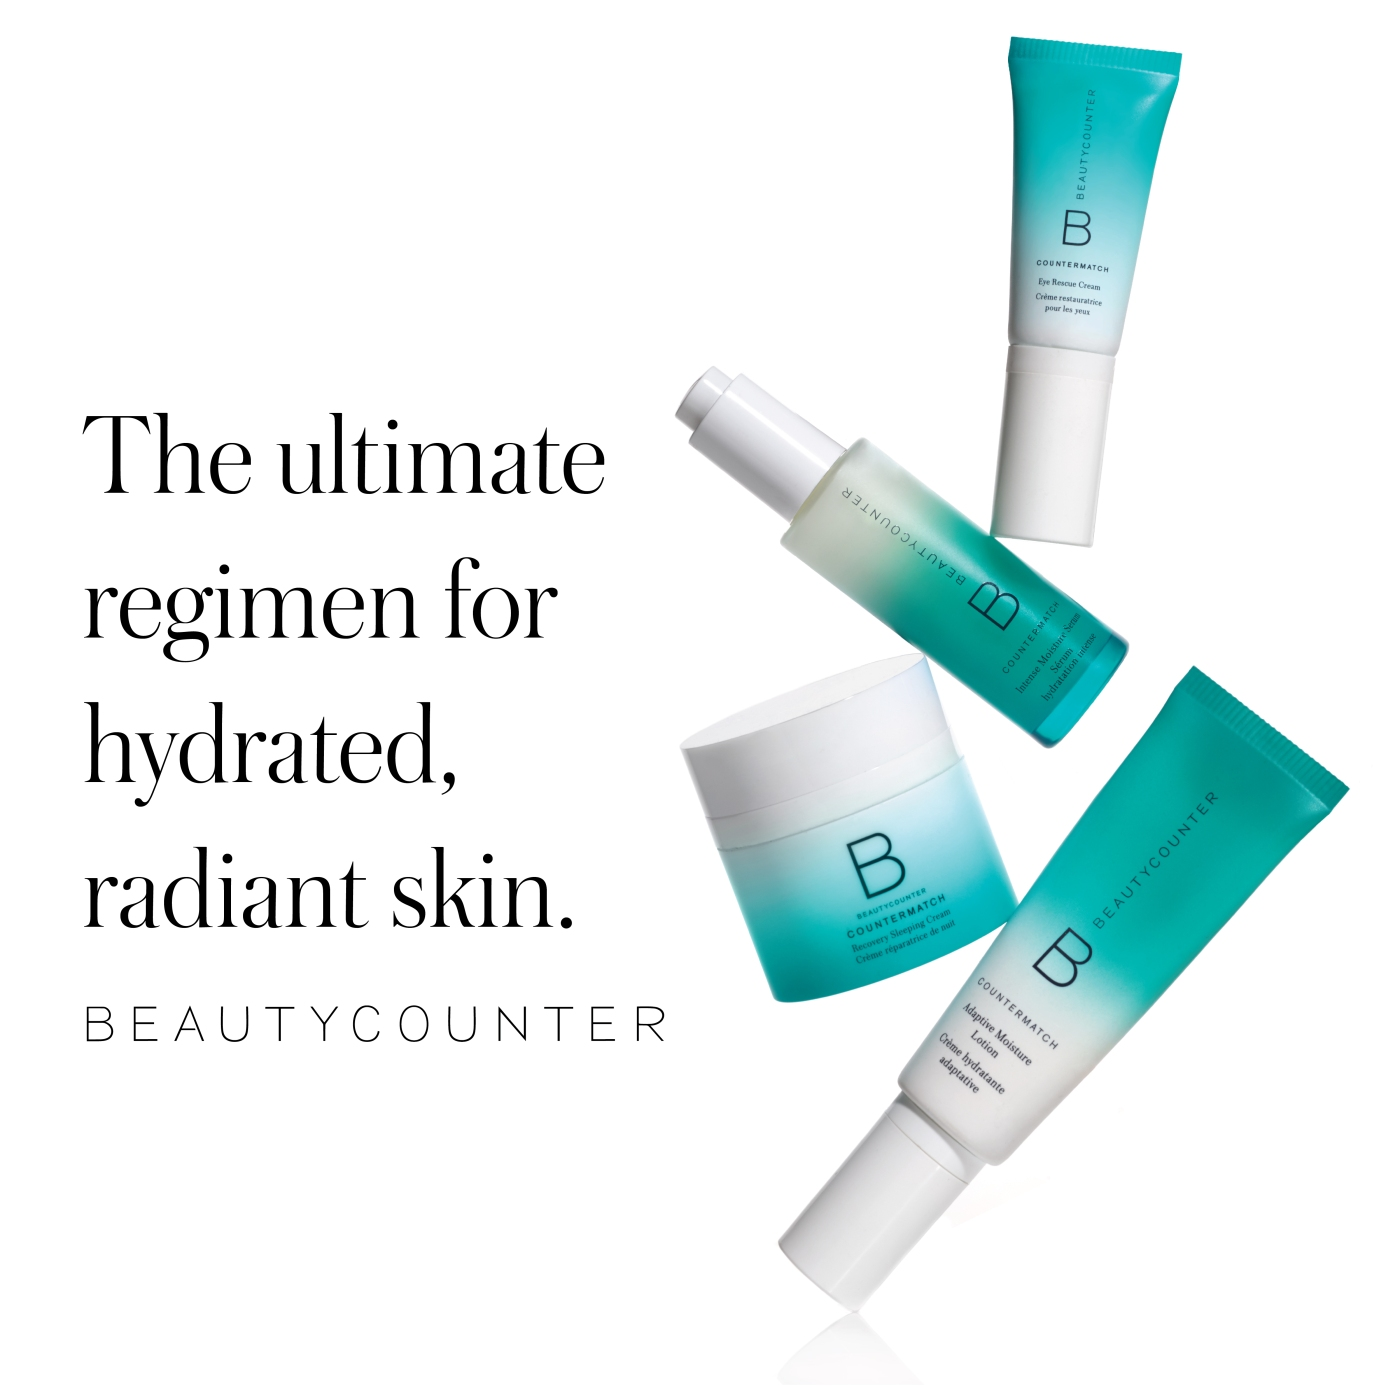 Better Beauty Vermont Beautycounter Countermatch Collection